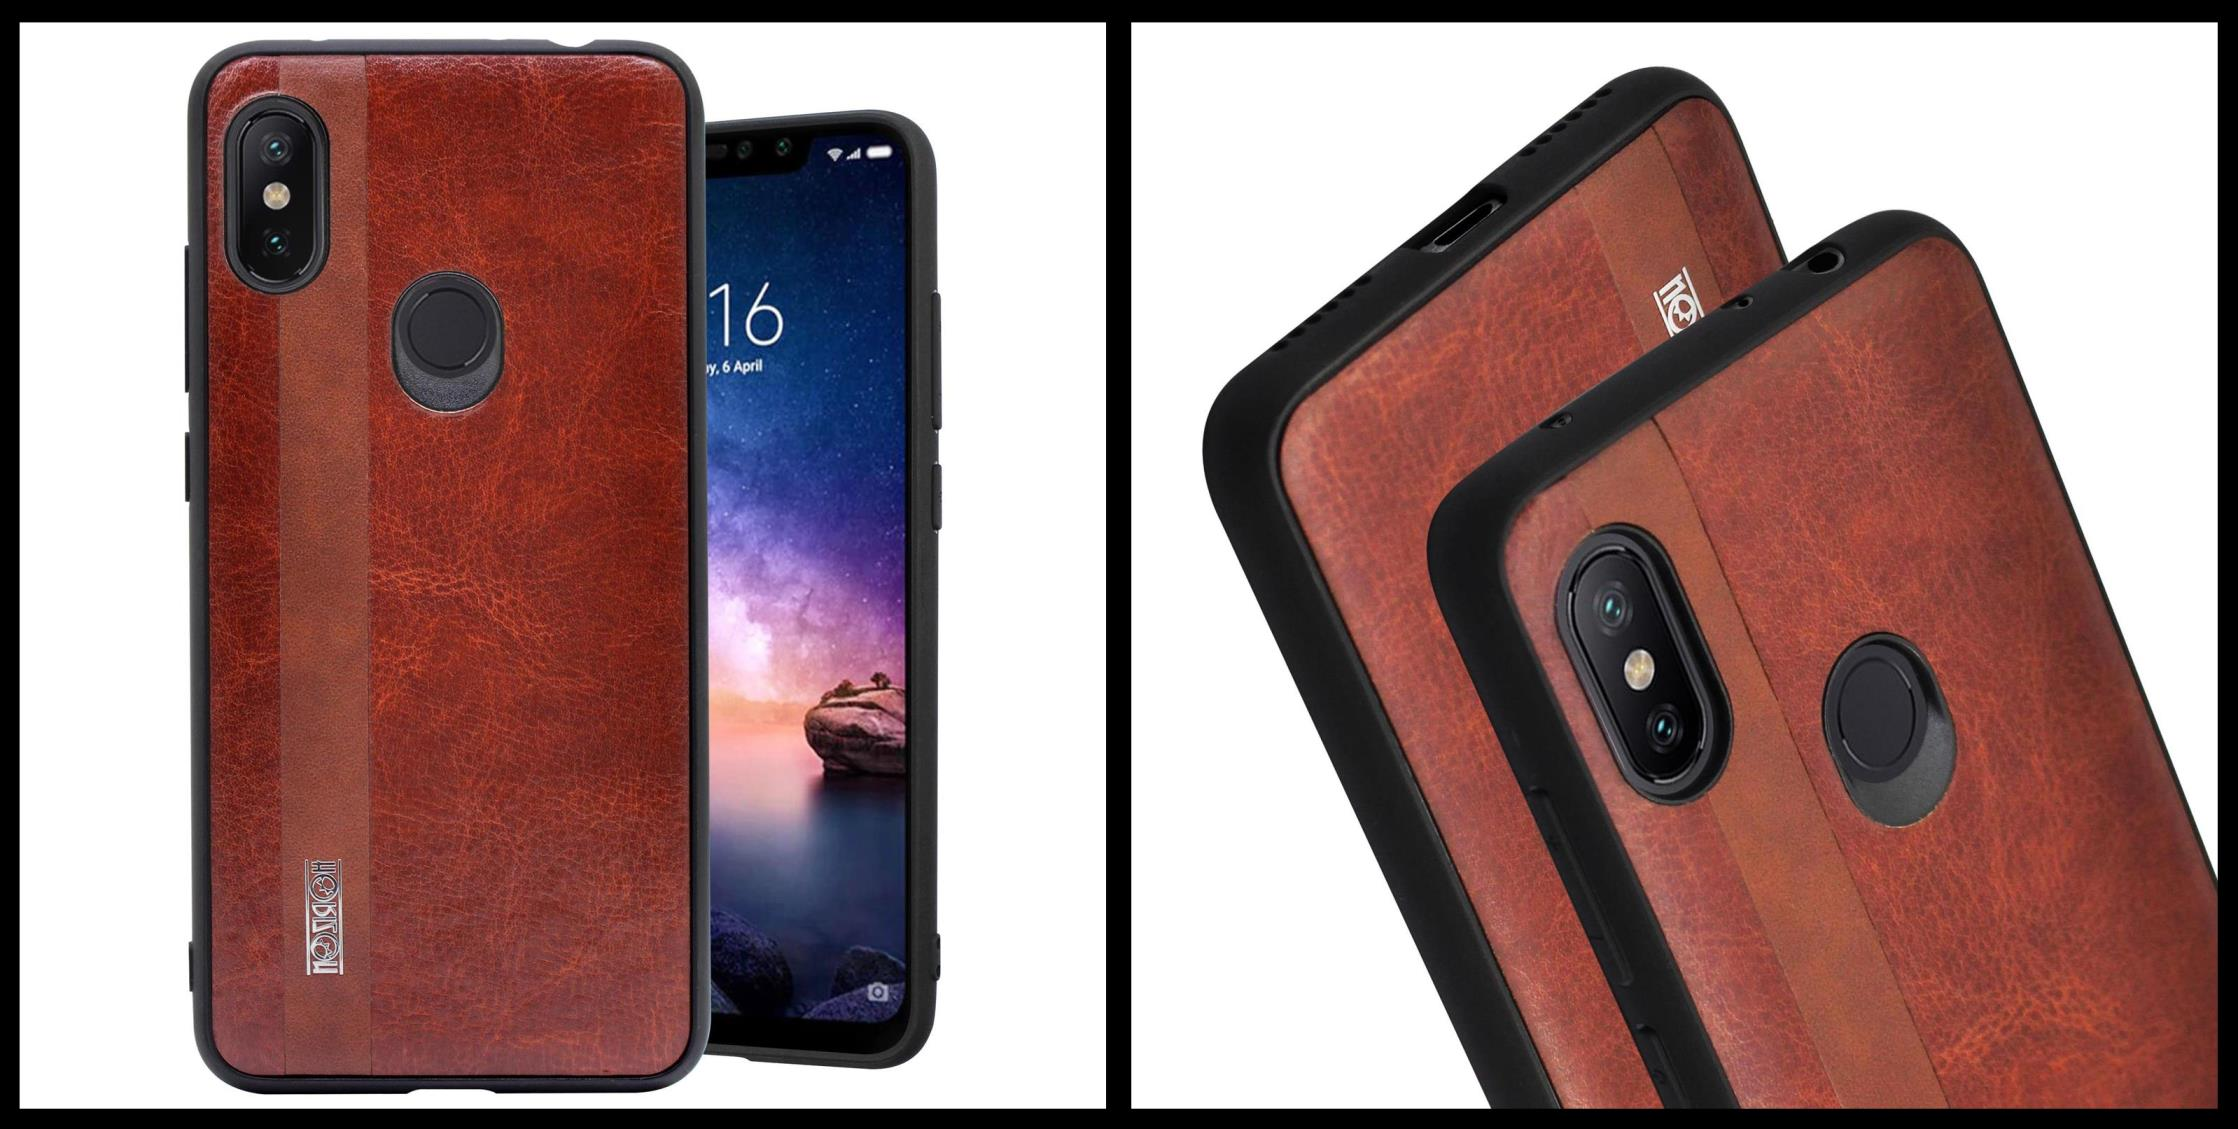 noziroh-leather-xiaomi-redmi-note-6-pro-cover-case-shockproof-slim-design-brown-black